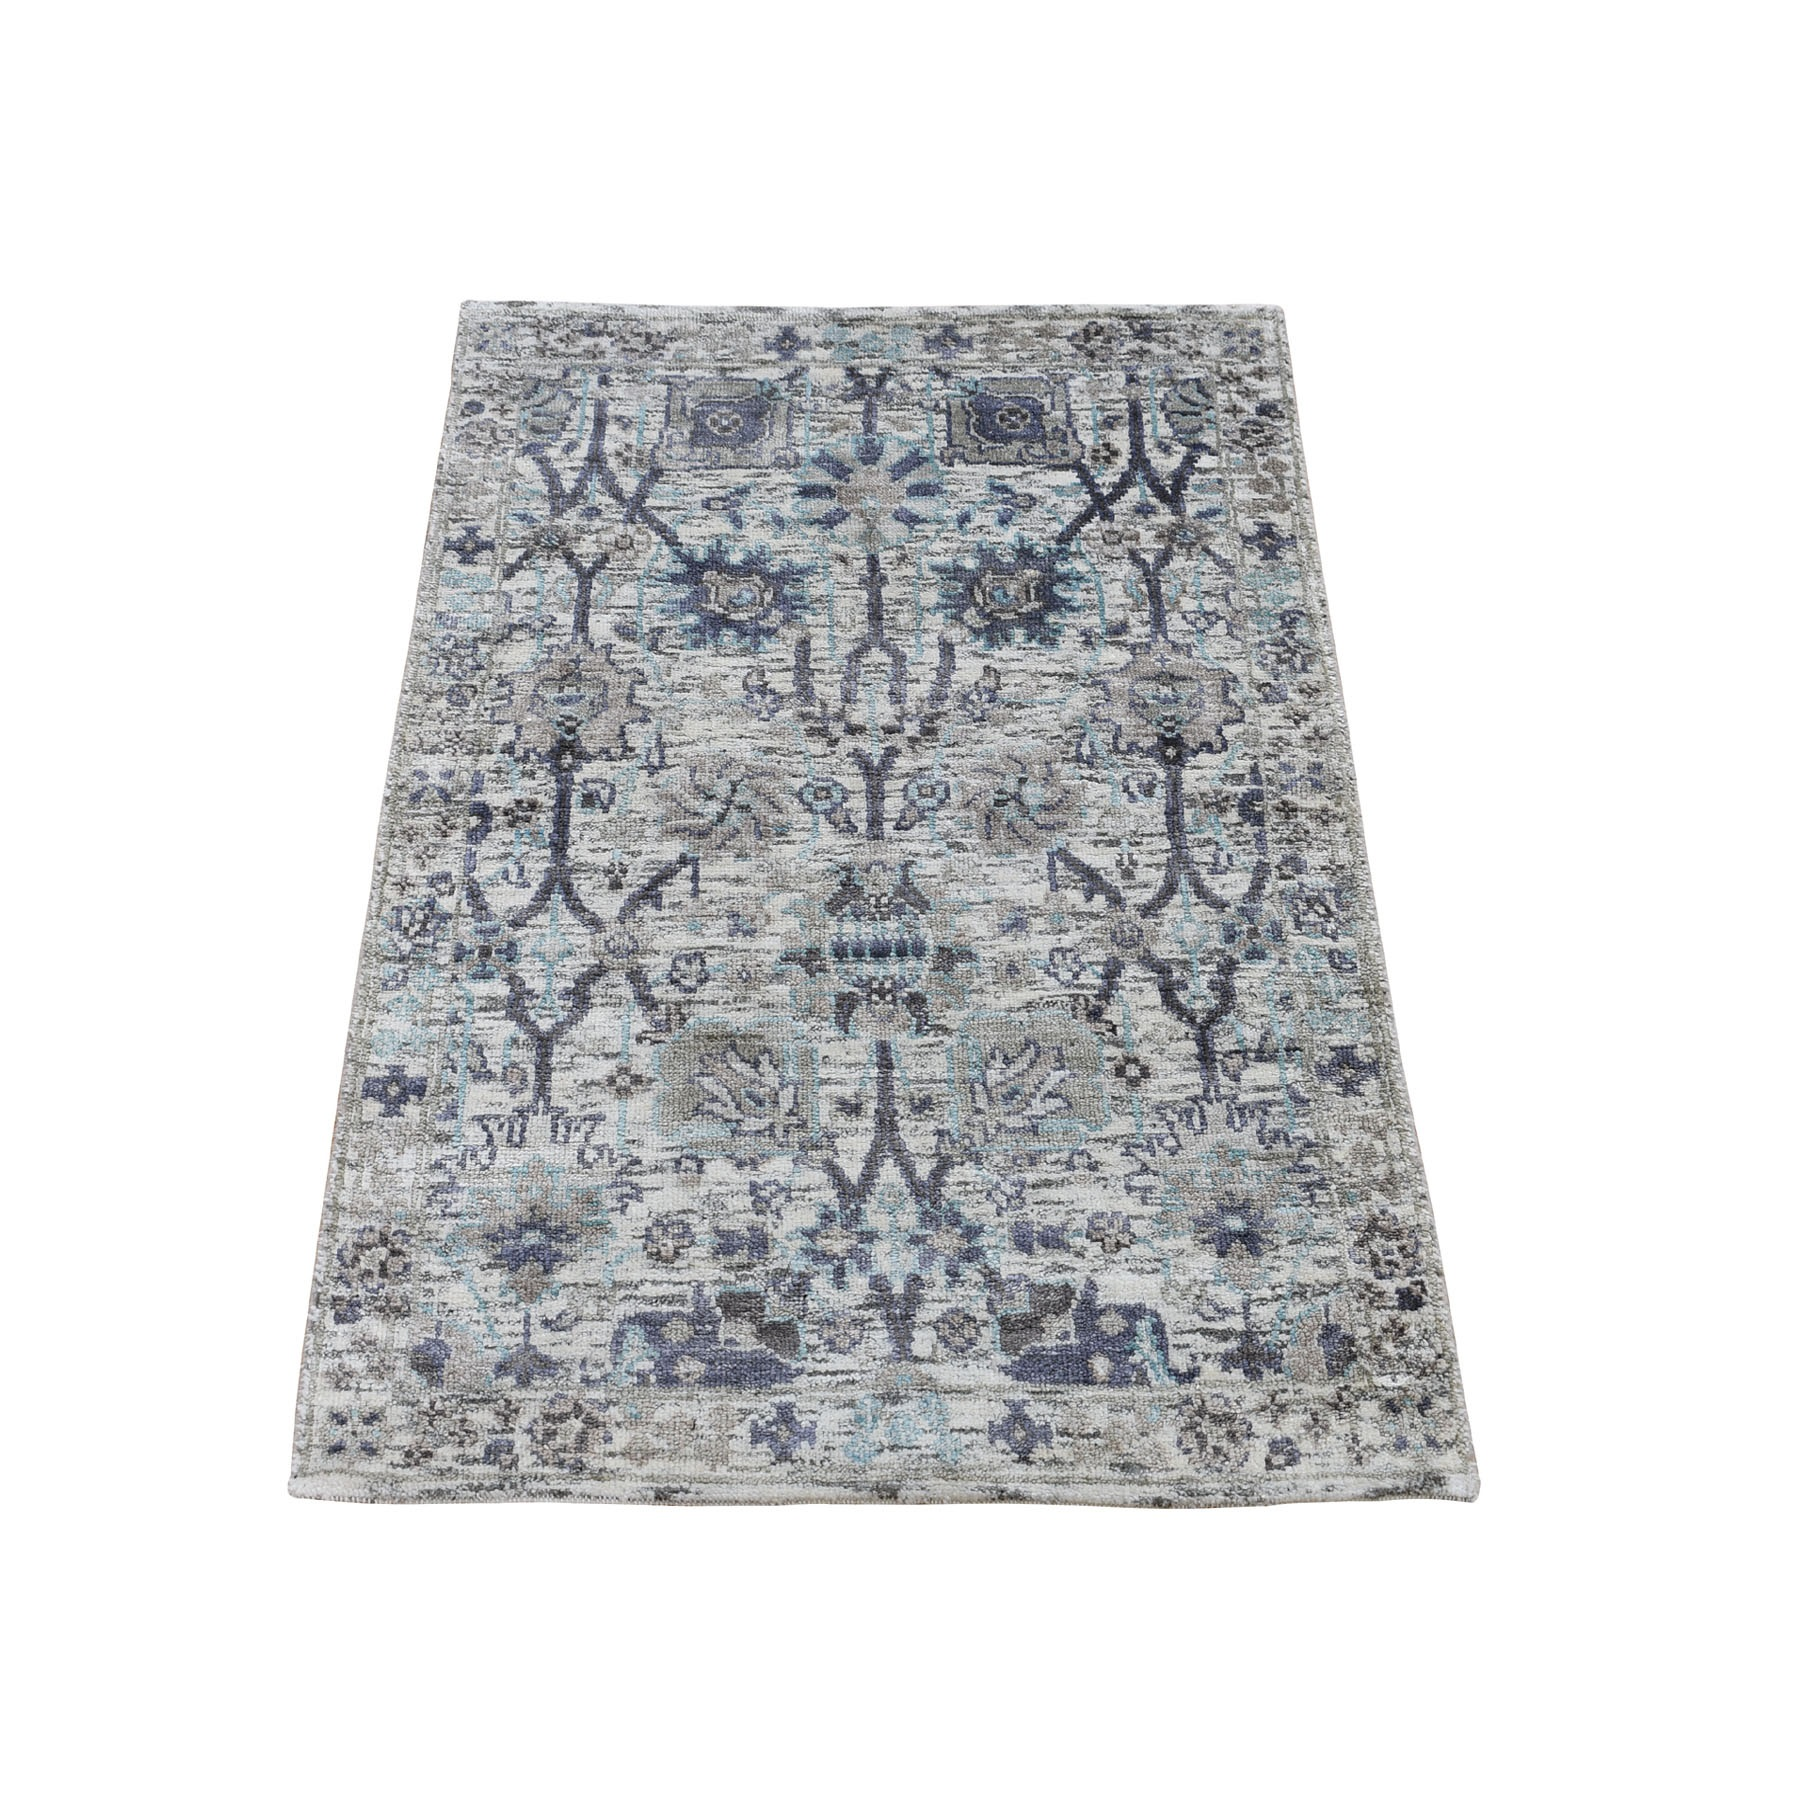 2-x3-1  Ivory Silk With Textured Wool Tabriz Hand Knotted Oriental Rug